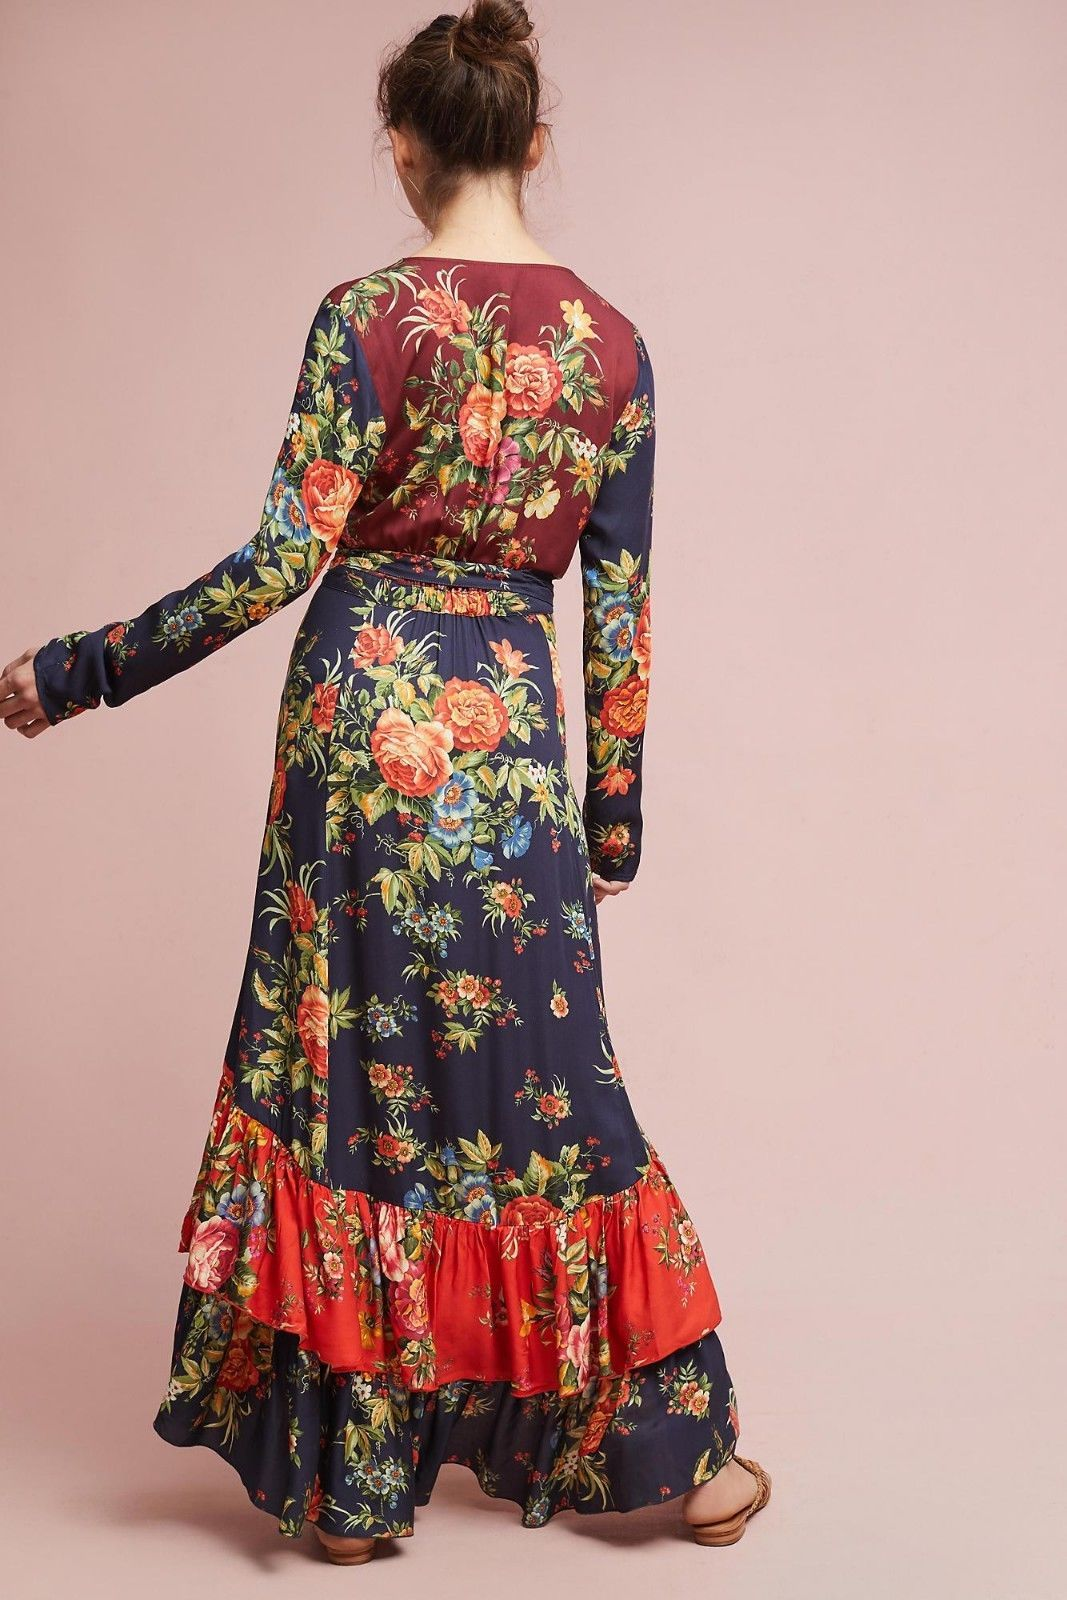 Anthropologie Farm Rio Audrey Wrap Dress $228 Sz XS, XSP - NWT